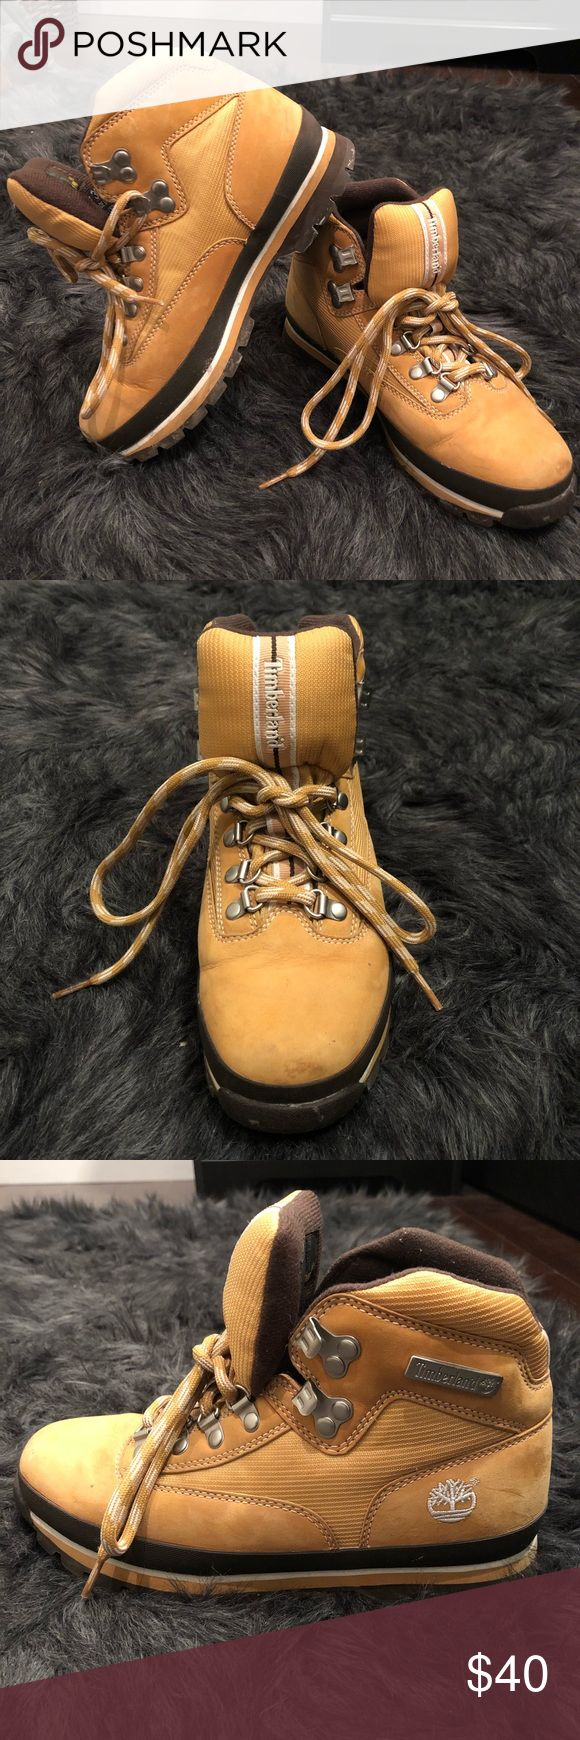 Women's Timberland Hiking Boots Women's Timberland Hiking Boots, Size 8M. Genuine leather and man-made upper outsole. Great traction and warmth. Timberland Shoes Combat & Moto Boots